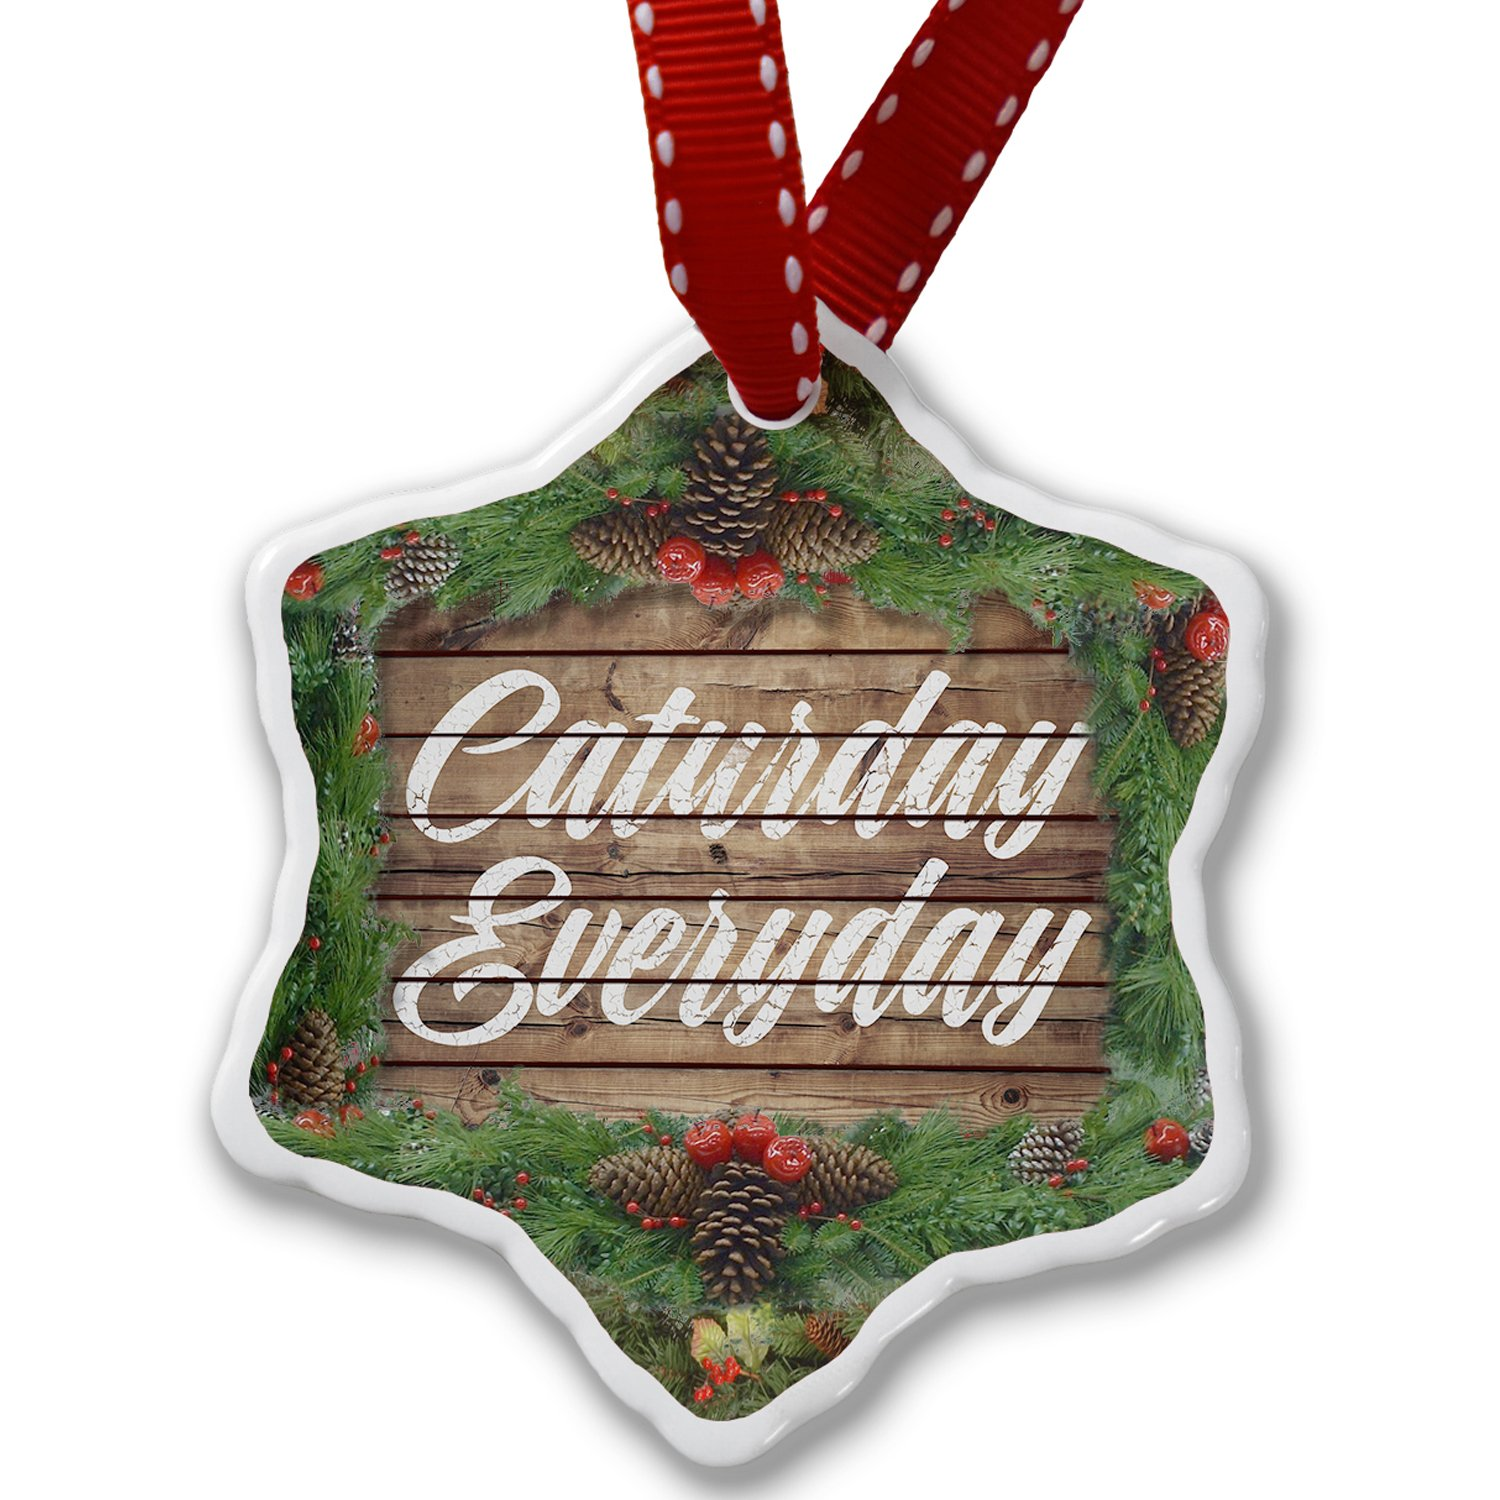 Christmas Ornament Painted Wood Caturday Everyday - Neonblond